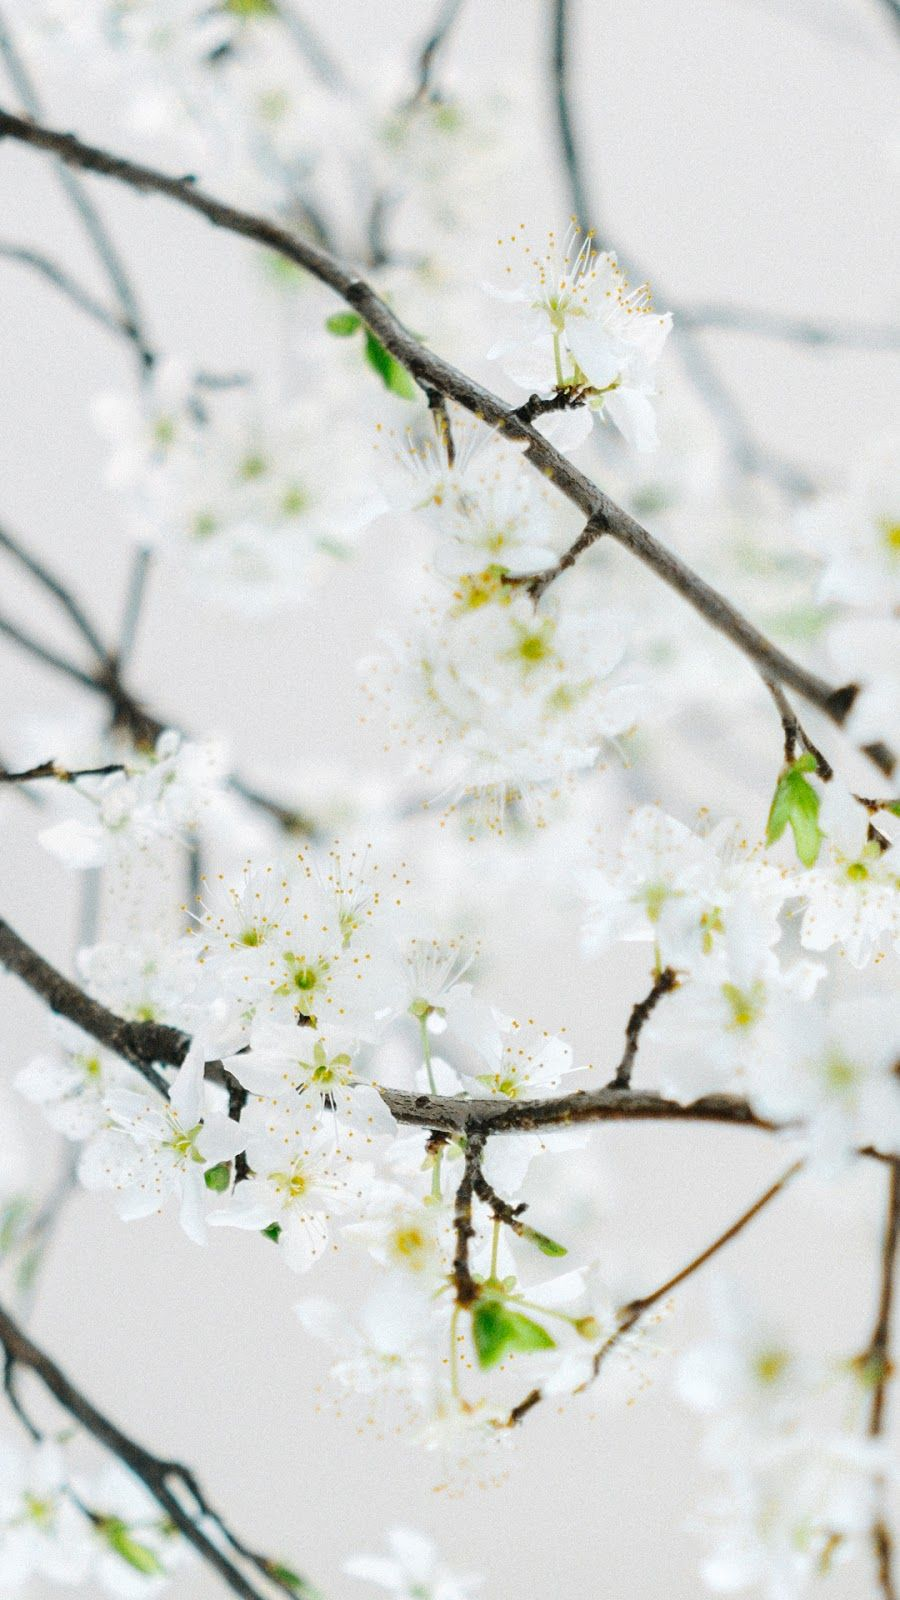 Cherry Blossom Wallpaper Iphone Android Cherry Blossom Wallpaper Photography Wallpaper Plant Wallpaper